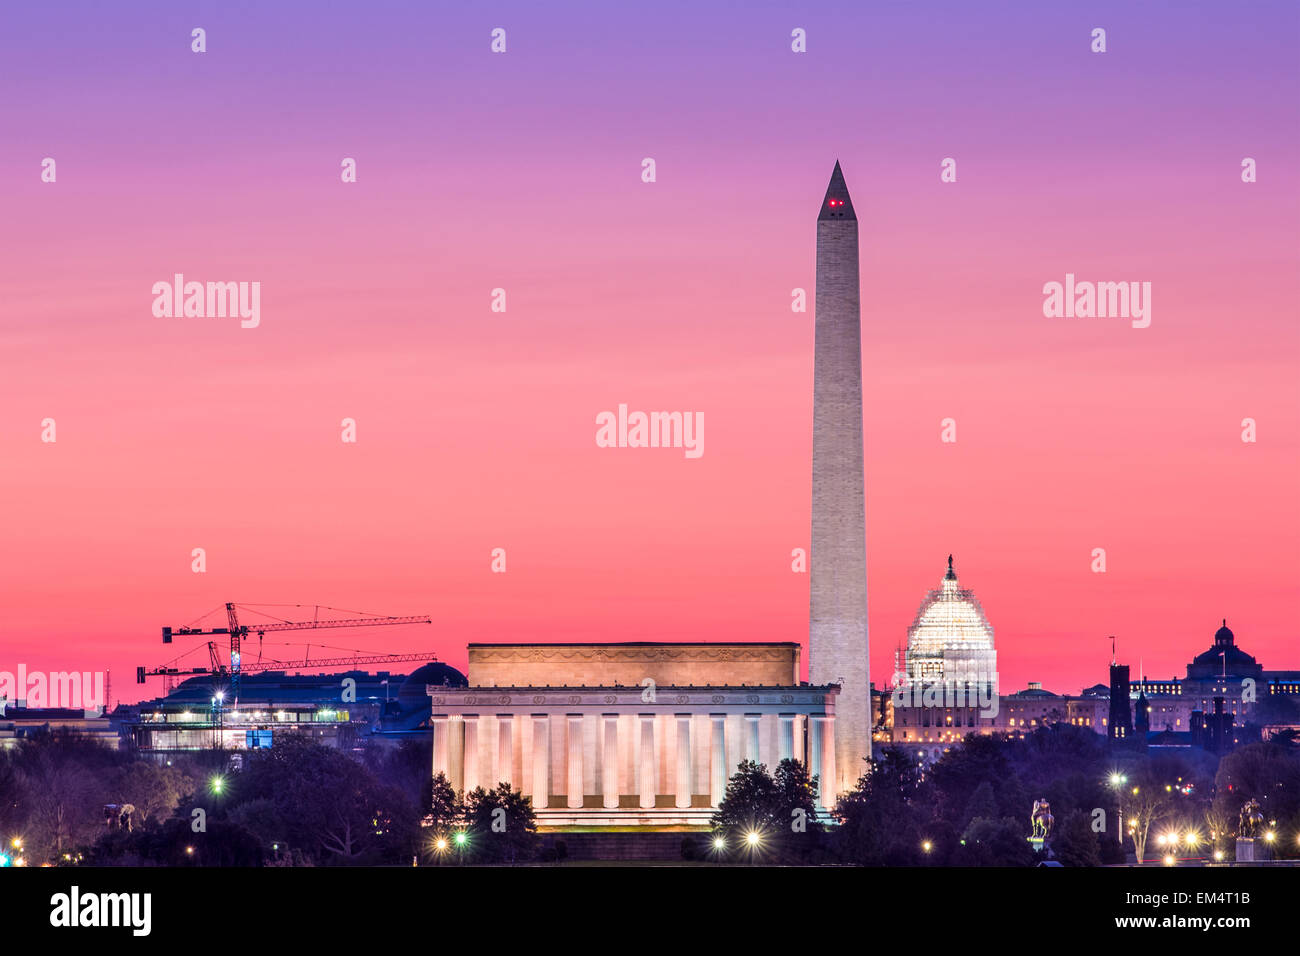 Washington, DC monumento skyline. Imagen De Stock